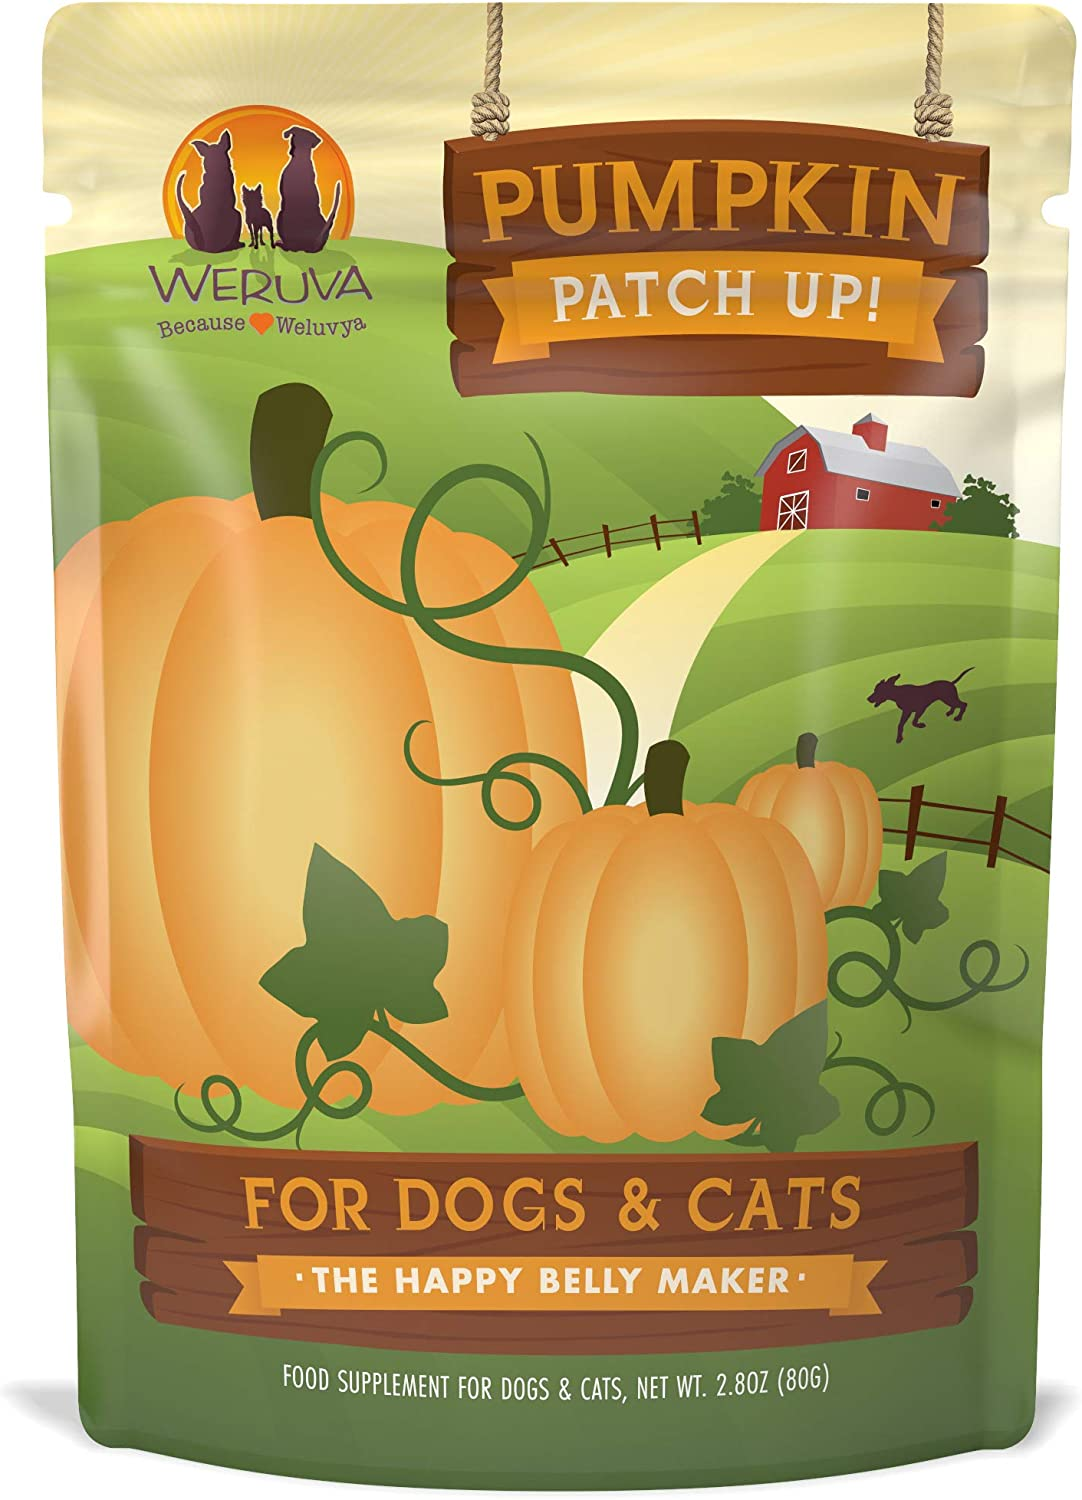 Weruva Pumpkin Patch Up Pumpkin Puree Digestive Supplement Pouches For Dogs Cats